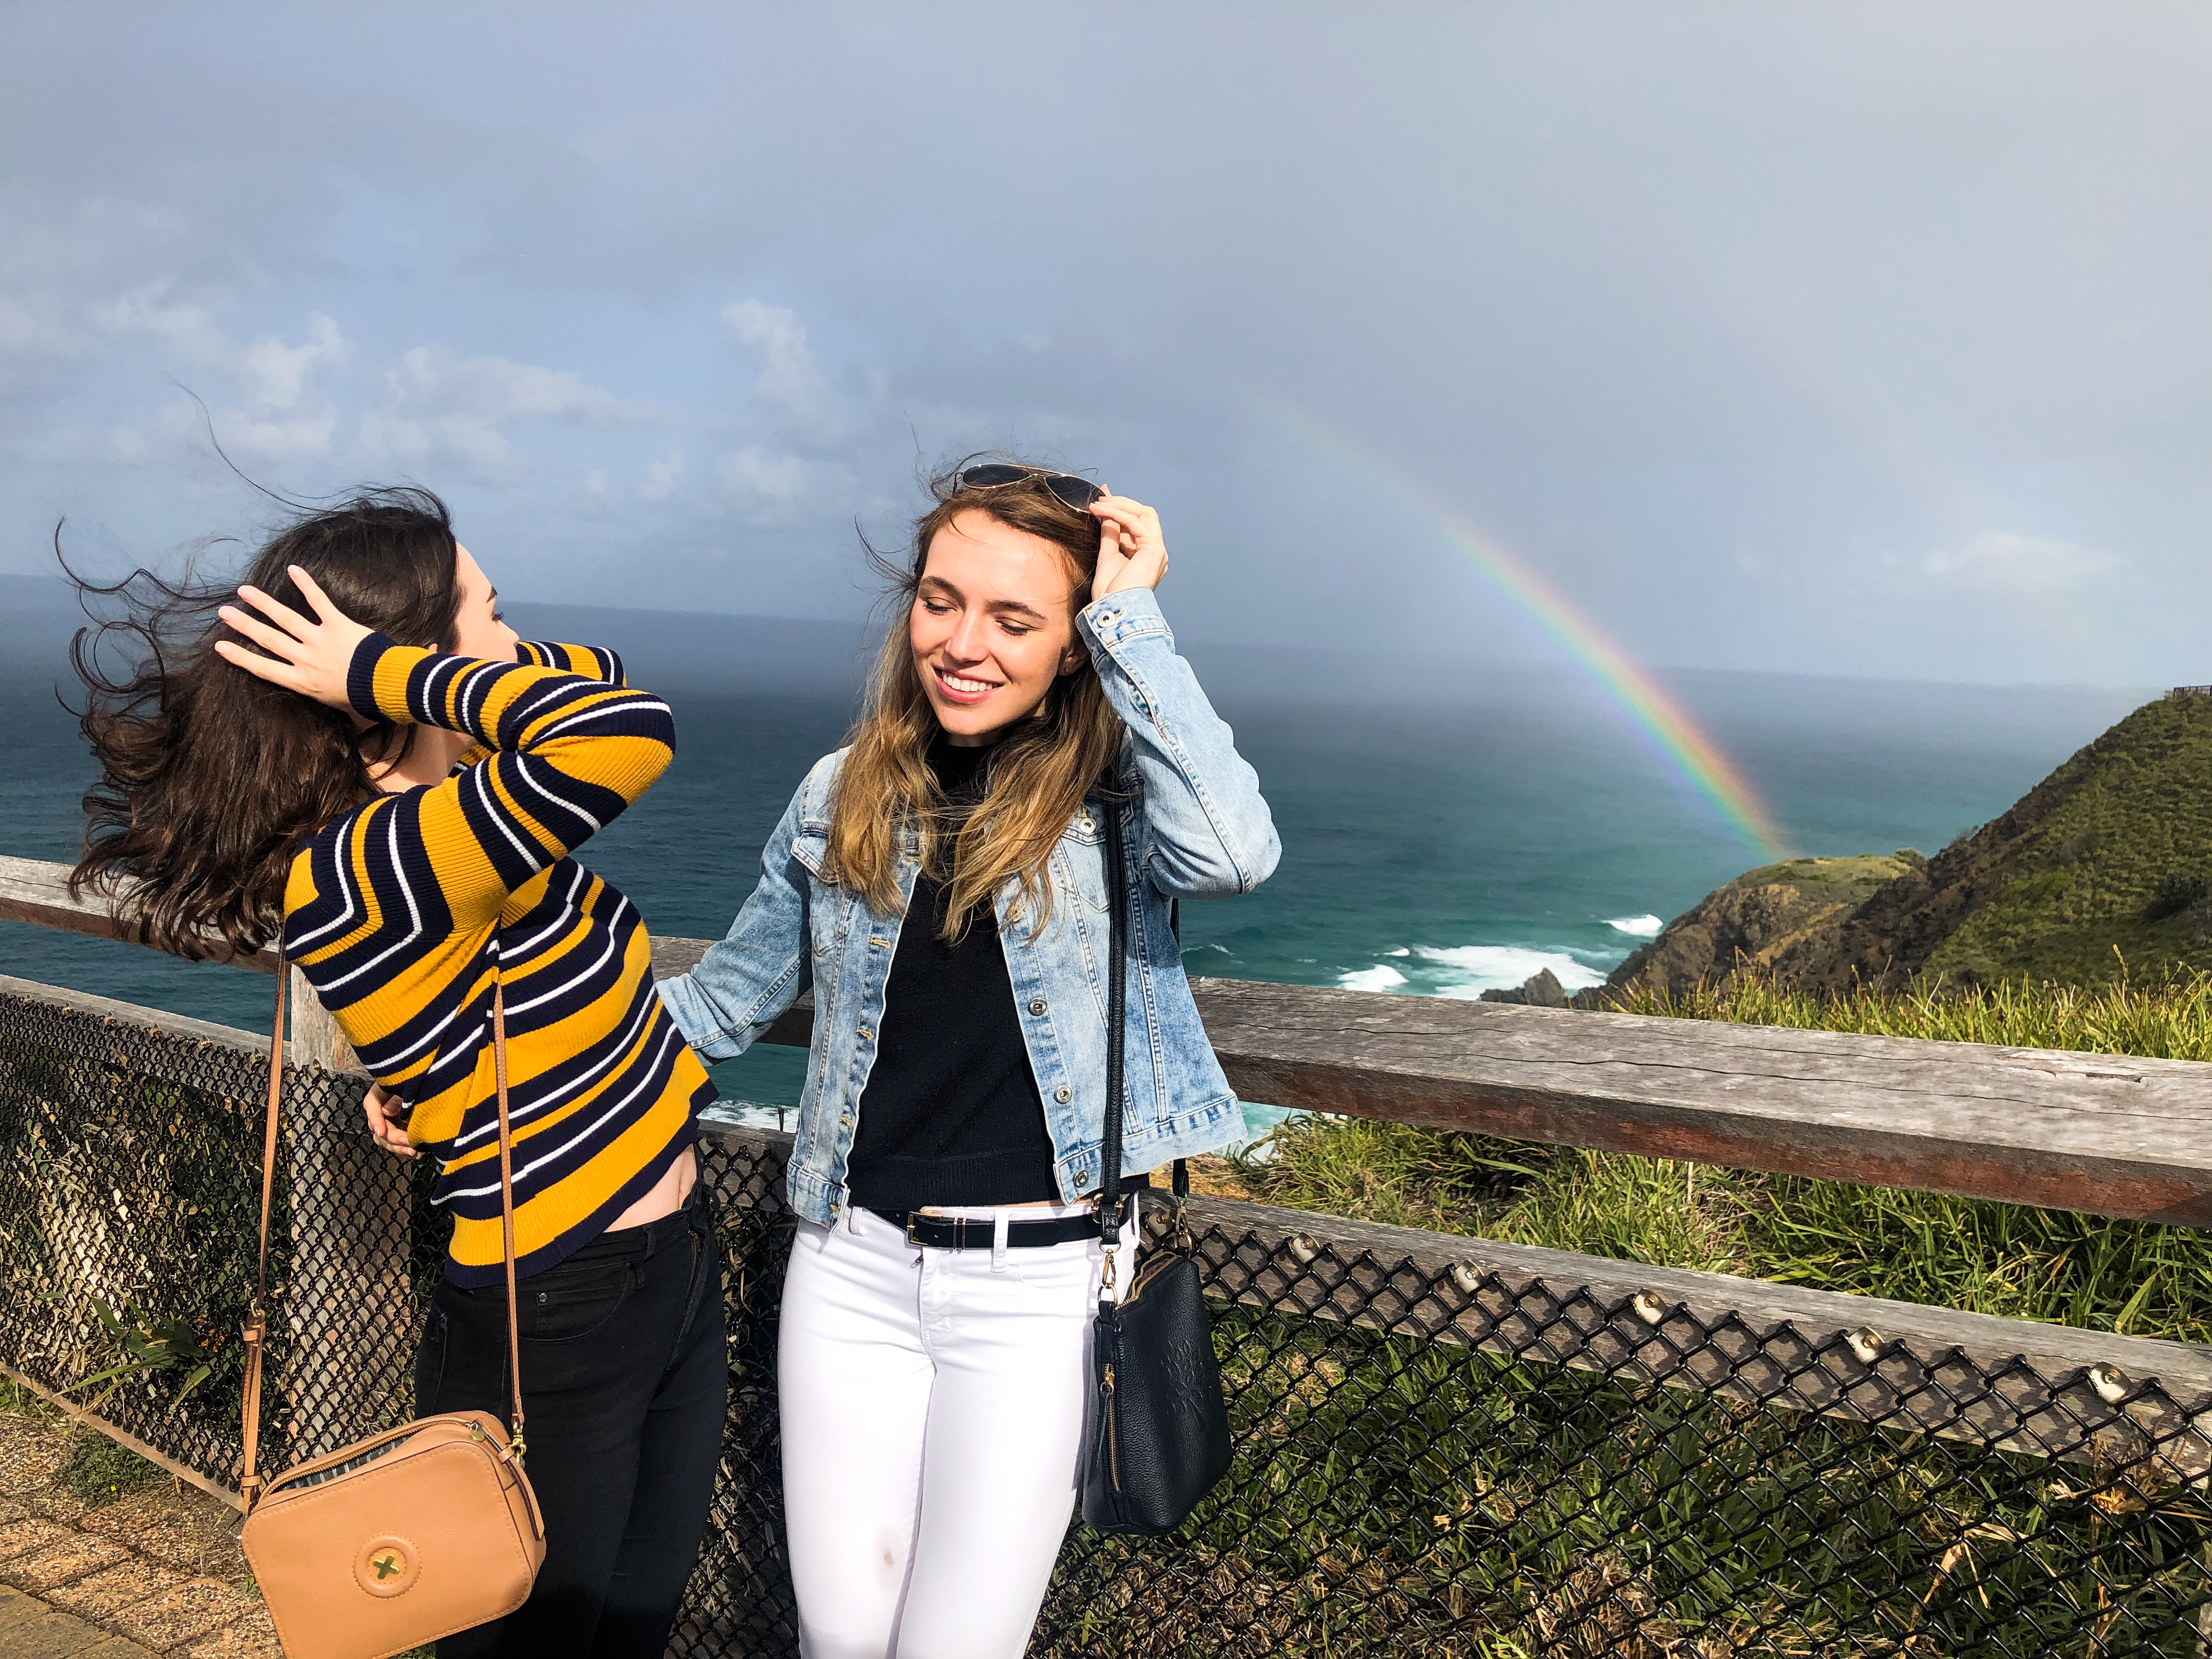 Watch out for the wind at Cape Byron - the most easterly point of Australia!